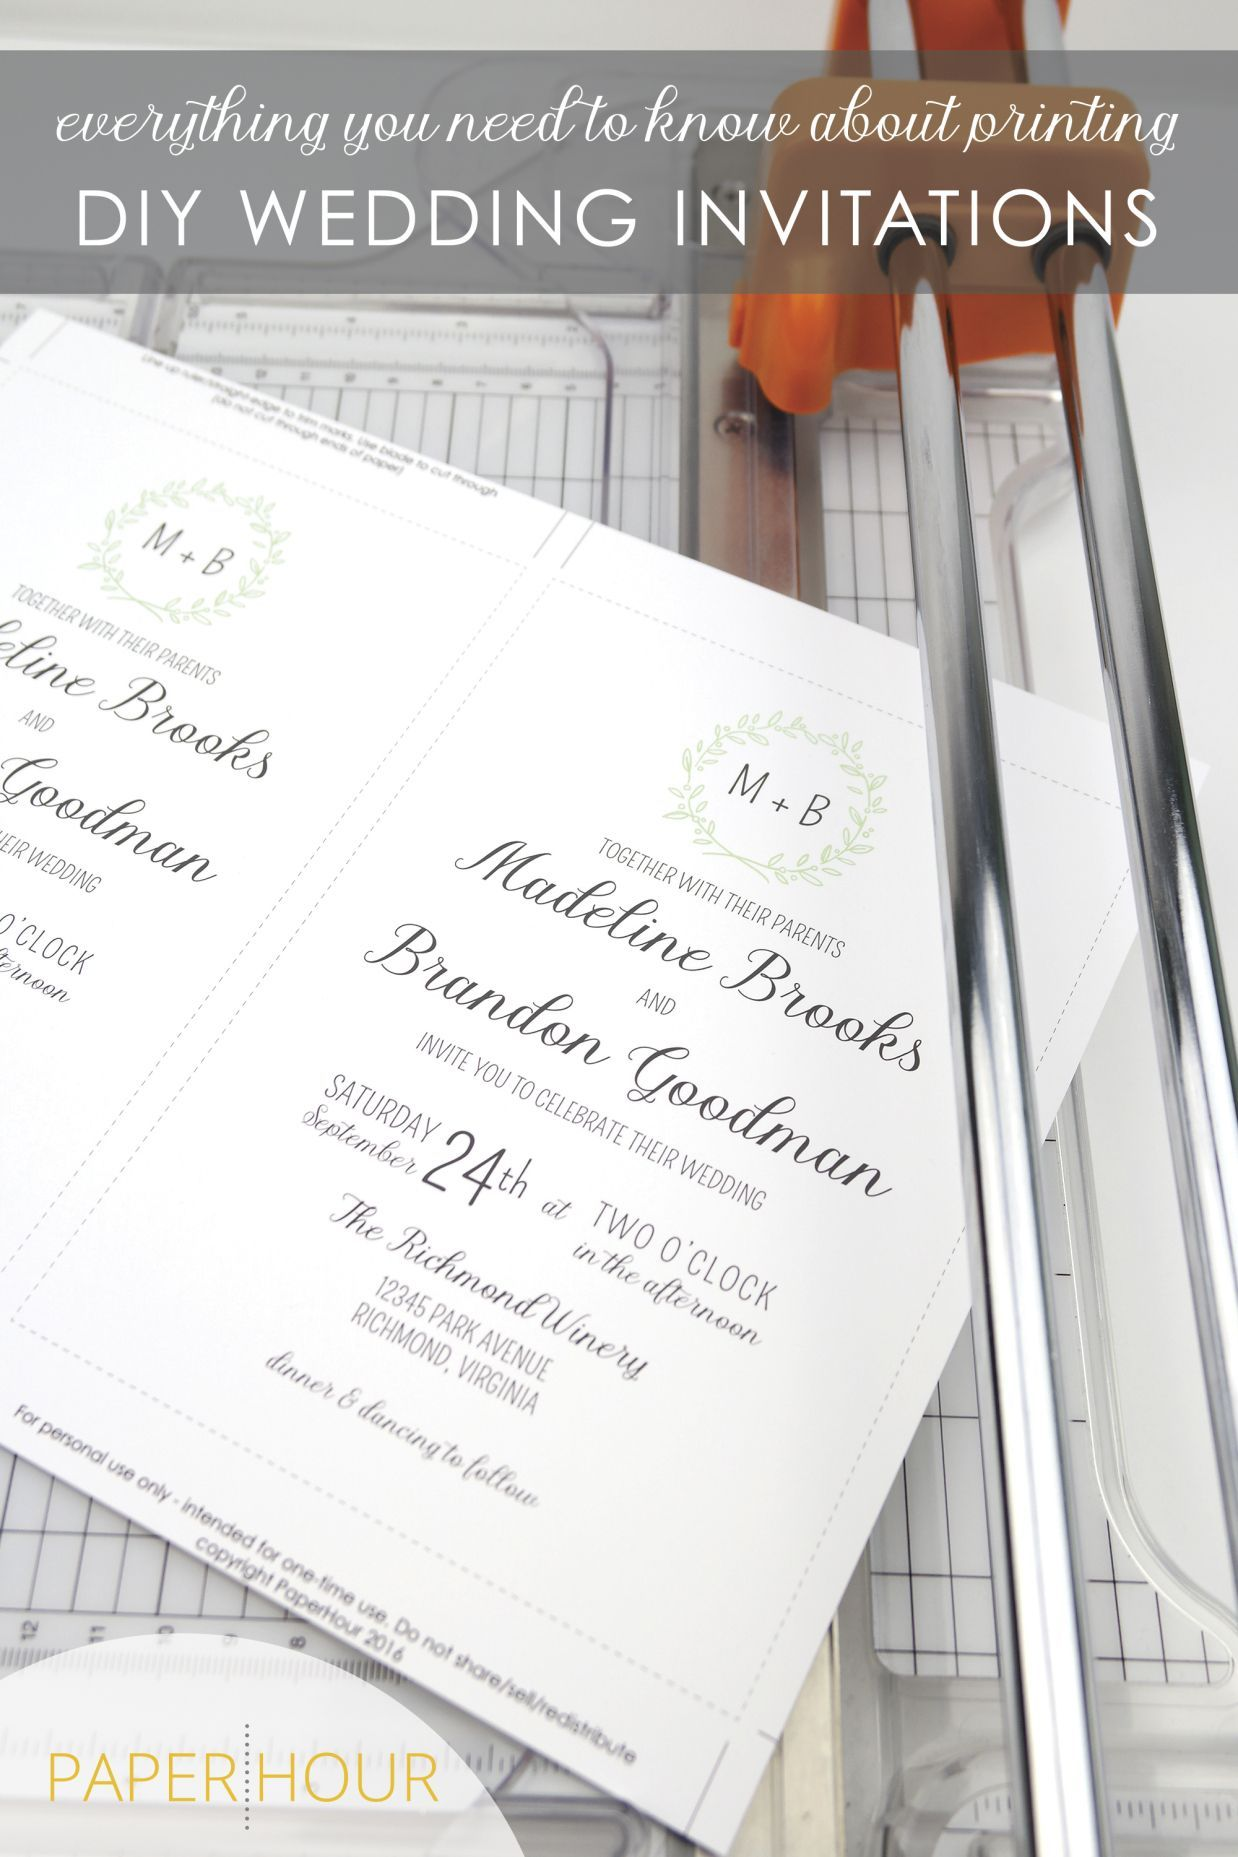 how to print diy wedding invitations everything you need to know